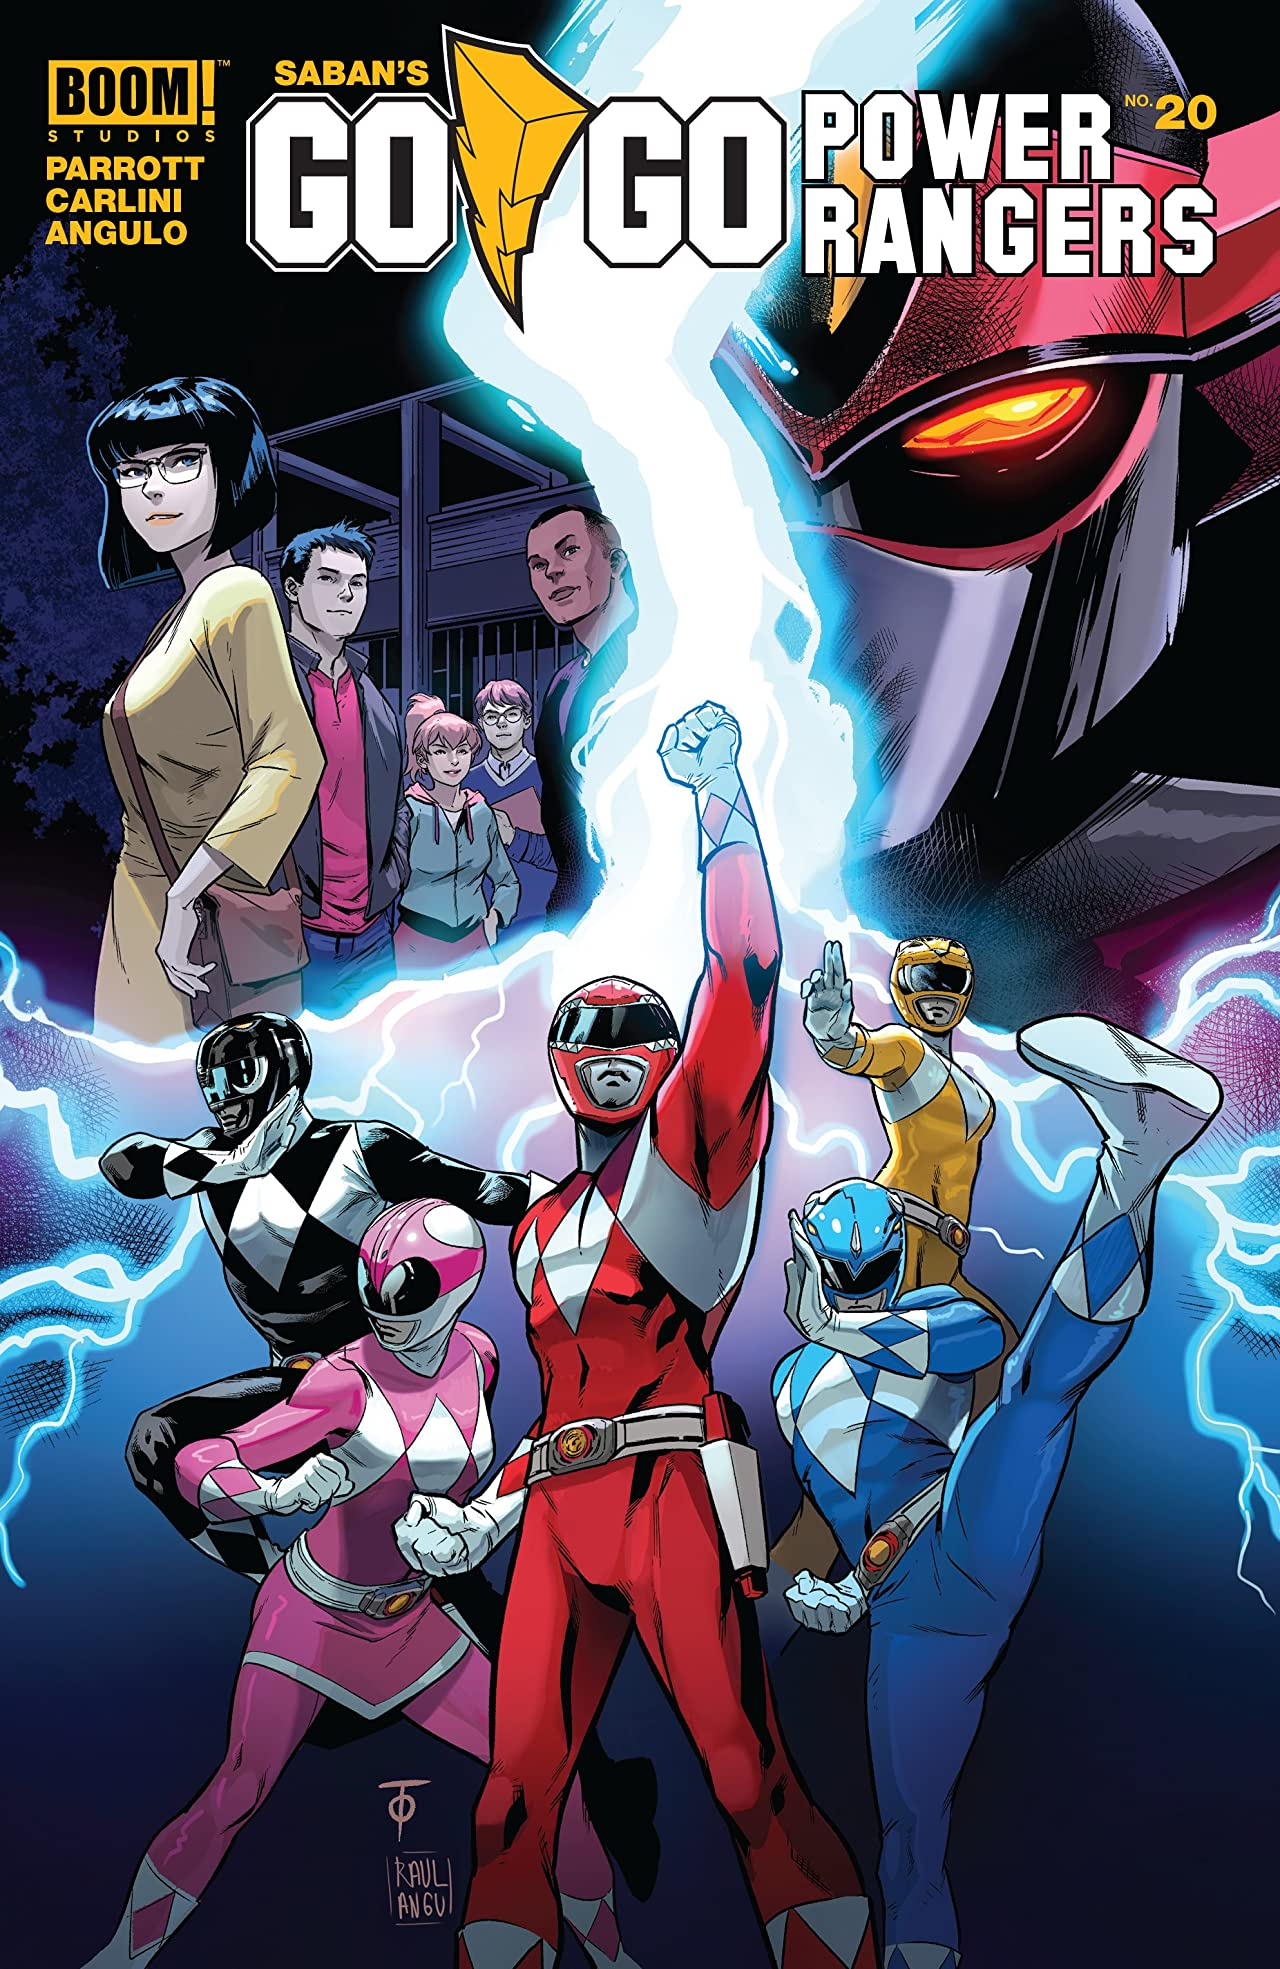 Saban's Go Go Power Rangers No.20